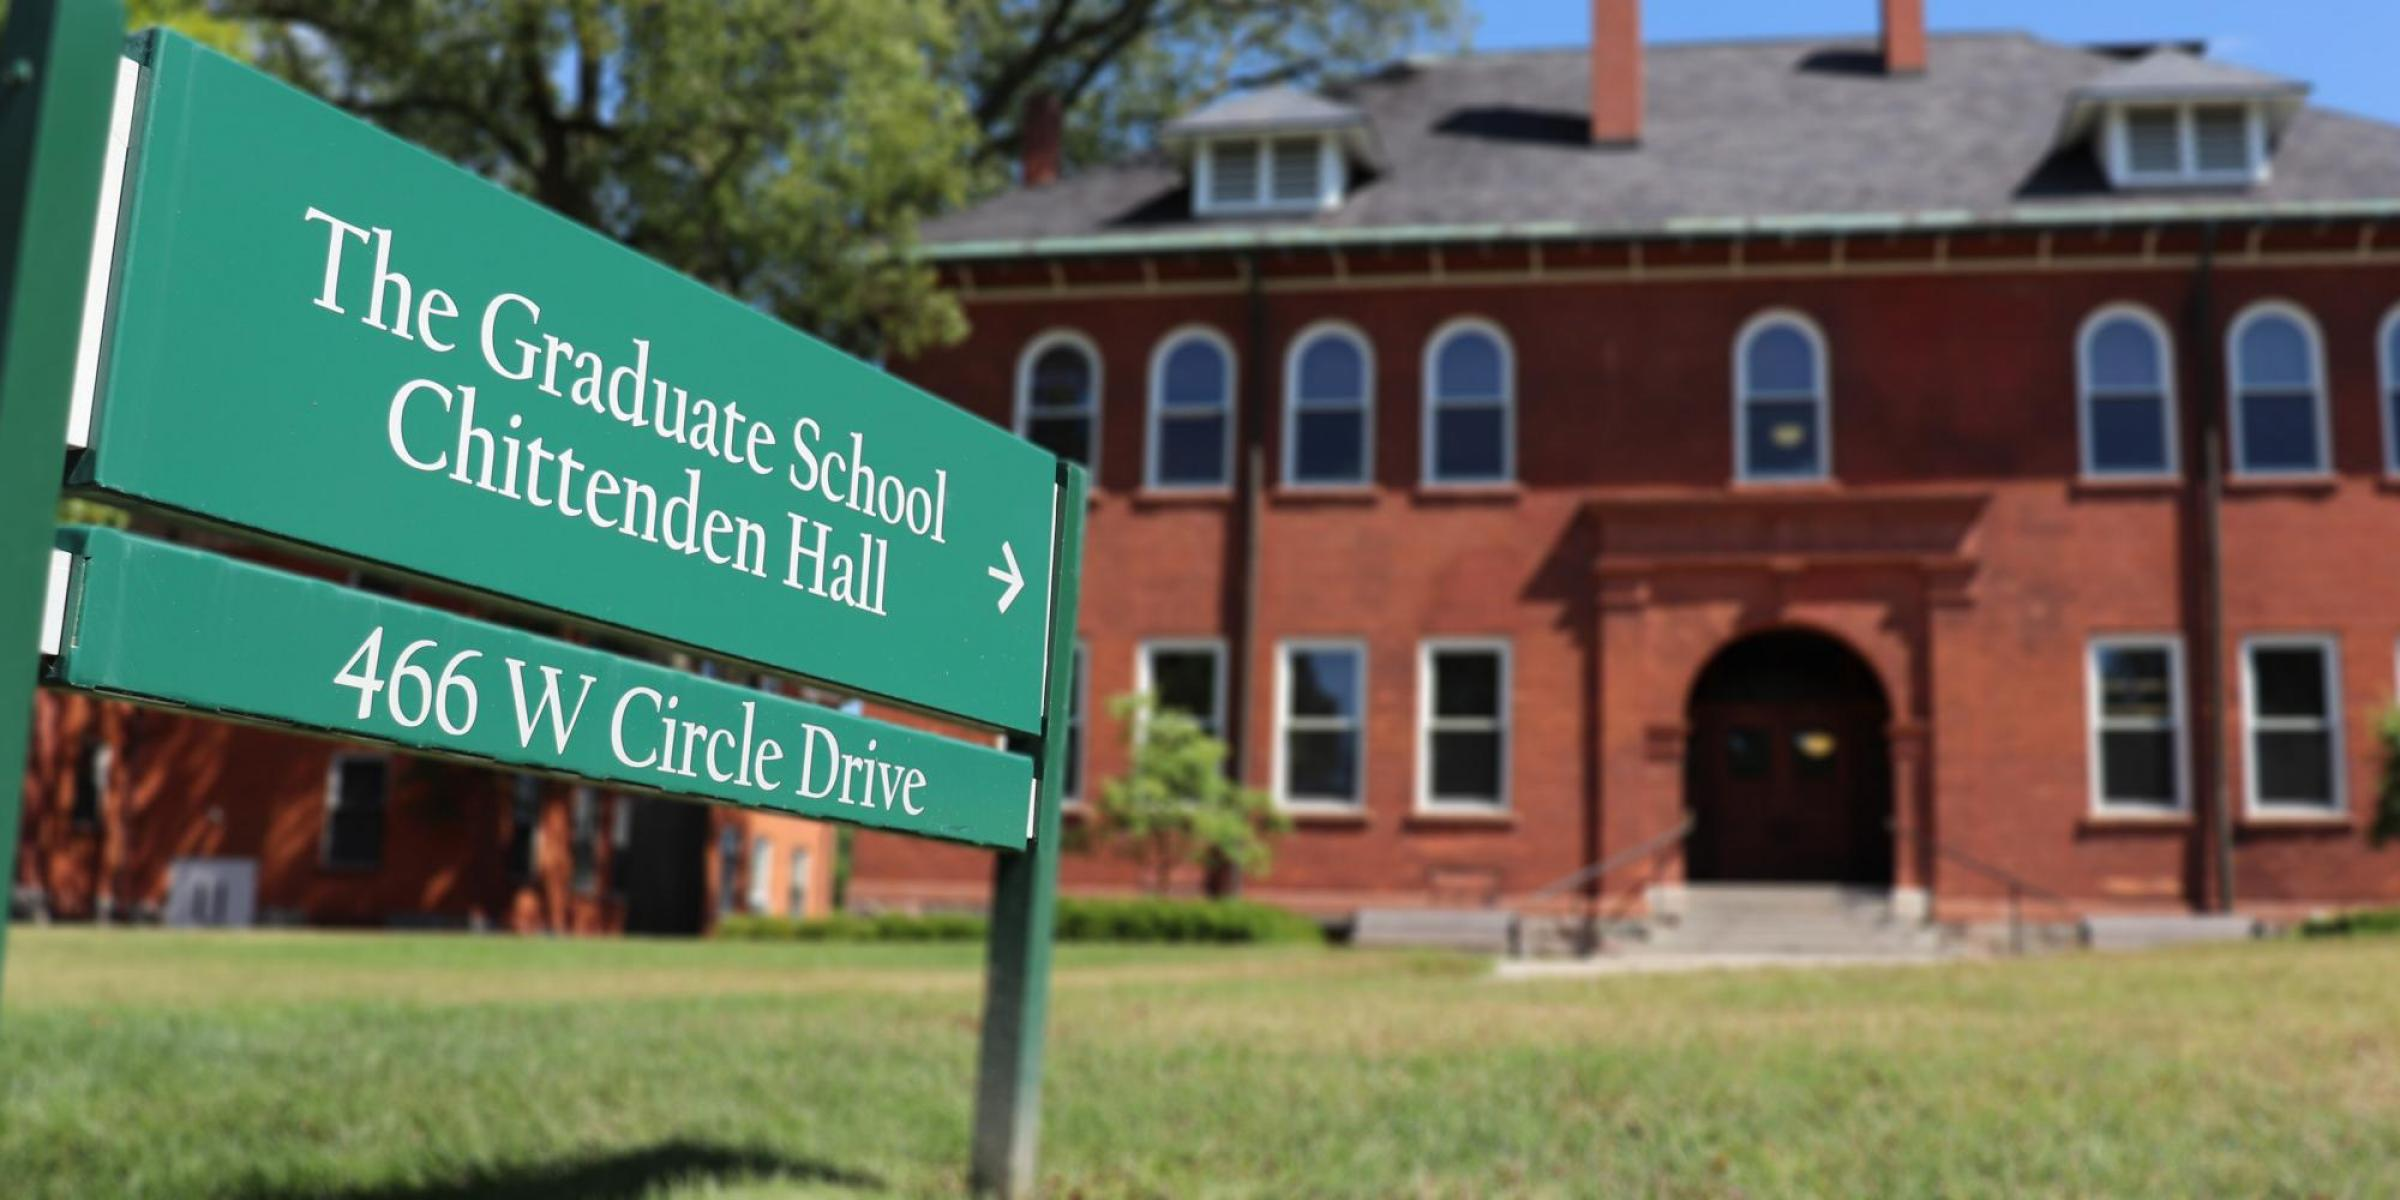 The Graduate School sign in front of Chittenden Hall